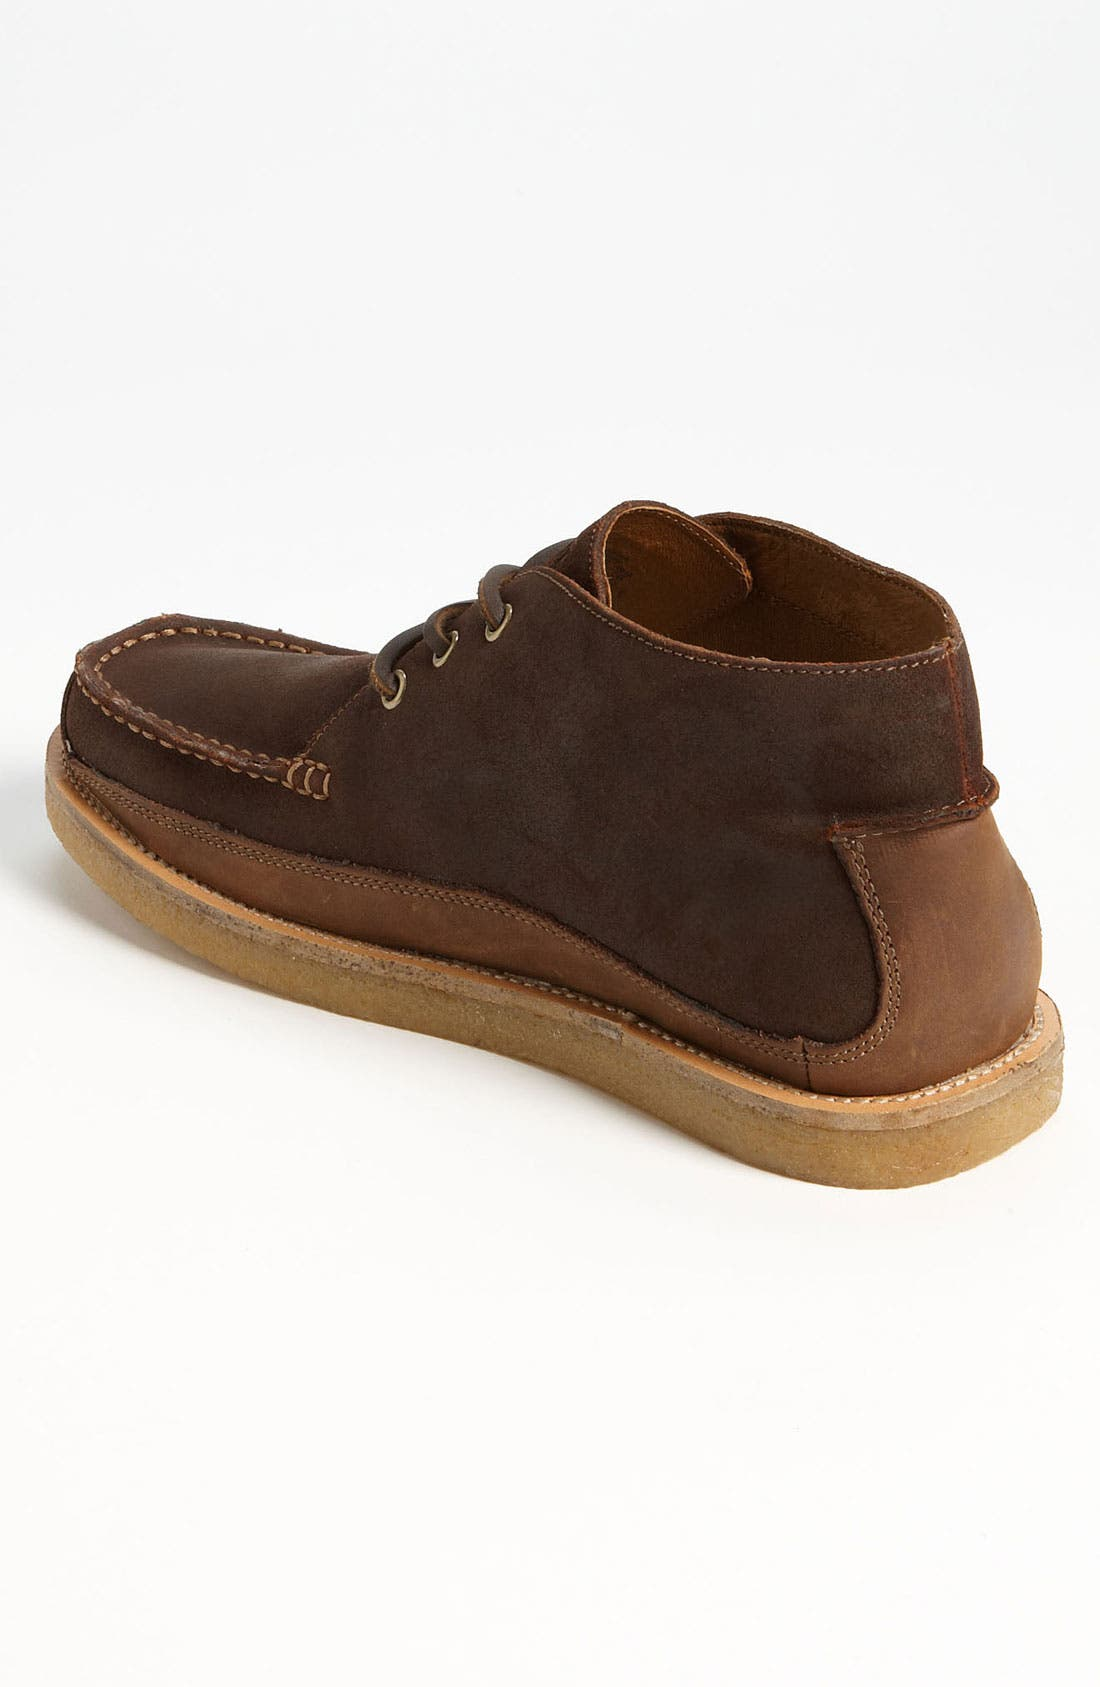 Alternate Image 2  - Fossil 'Pueblo' Chukka Boot